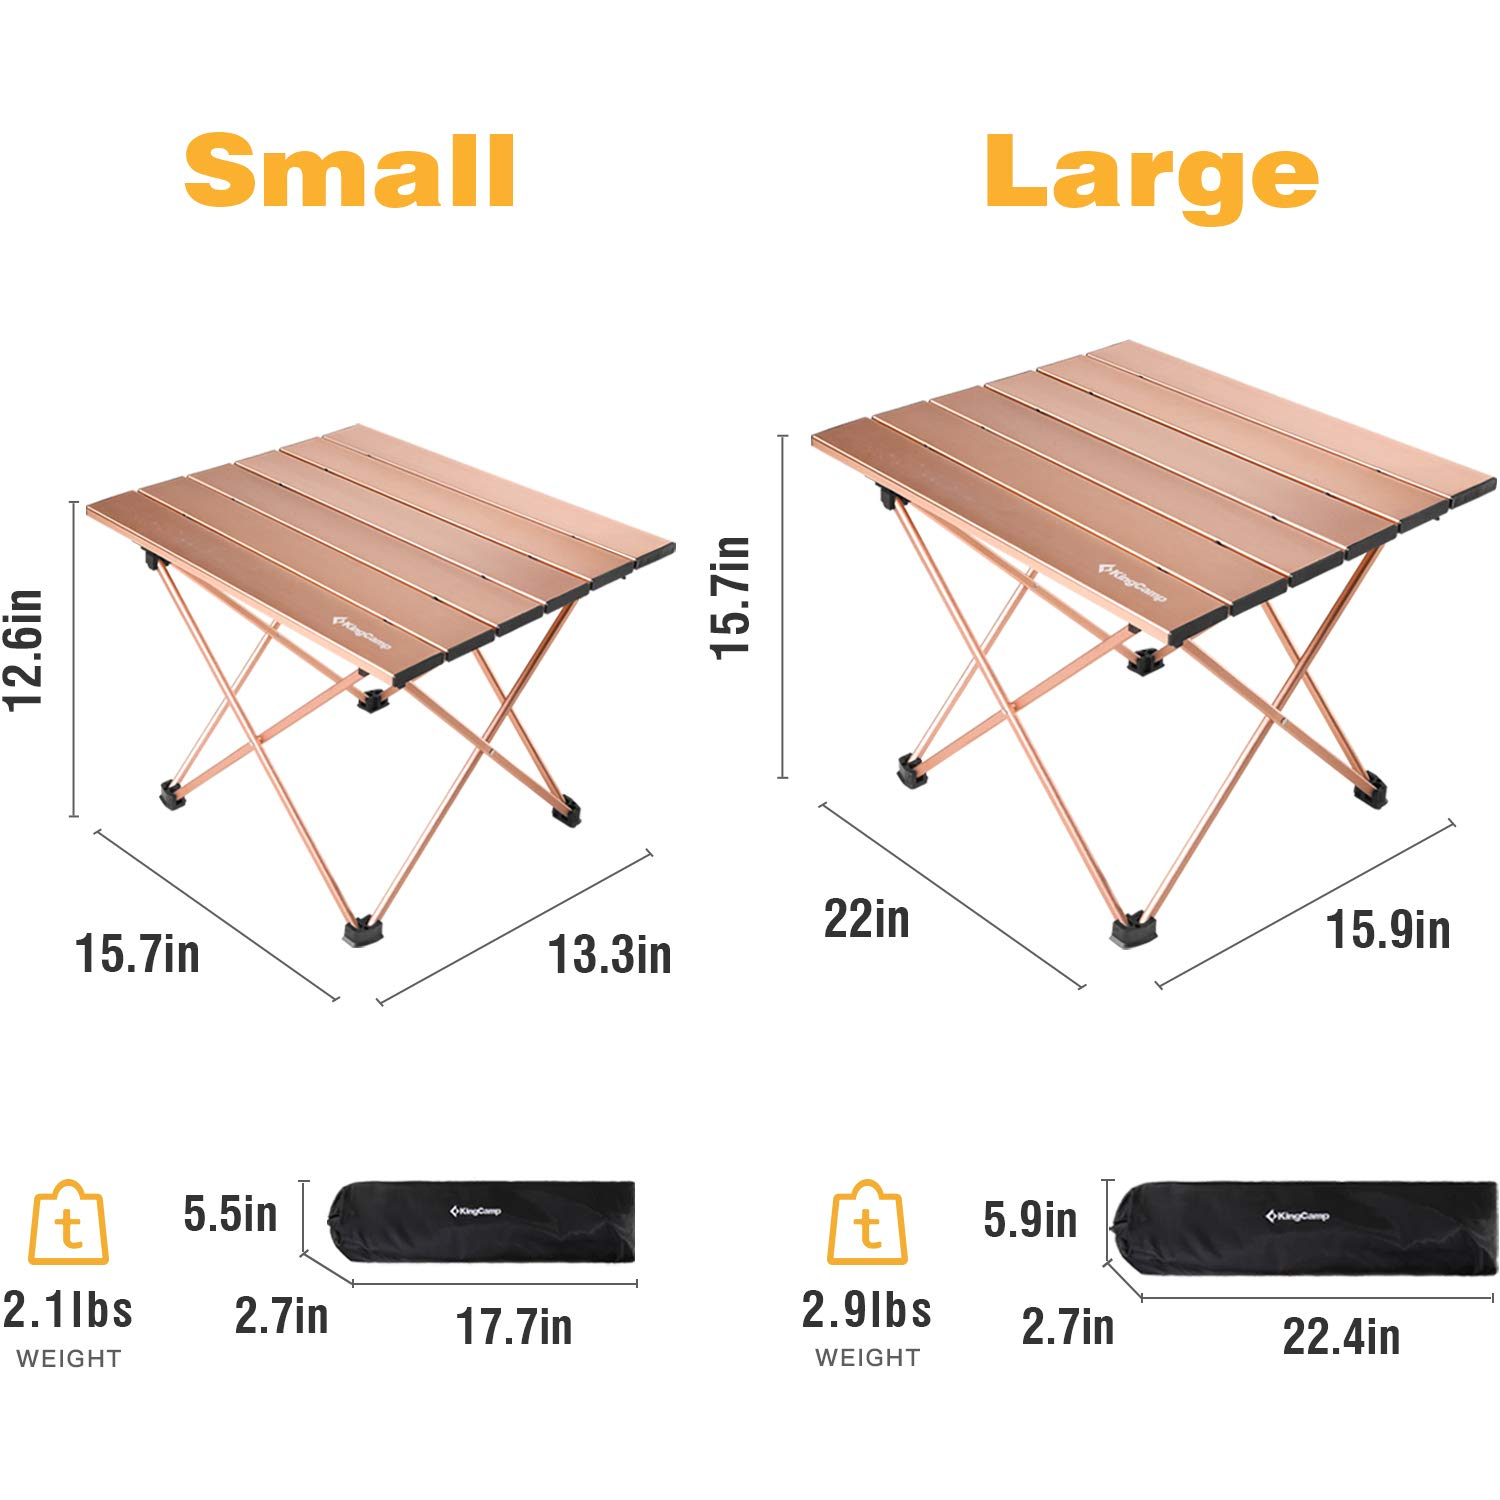 KingCamp Ultralight Compact Folding Table Camping Aluminum Tables with Carry Bag, Two Sizes, Large 22 x 15.7 inch, Small 15.7 x 13.4 inch